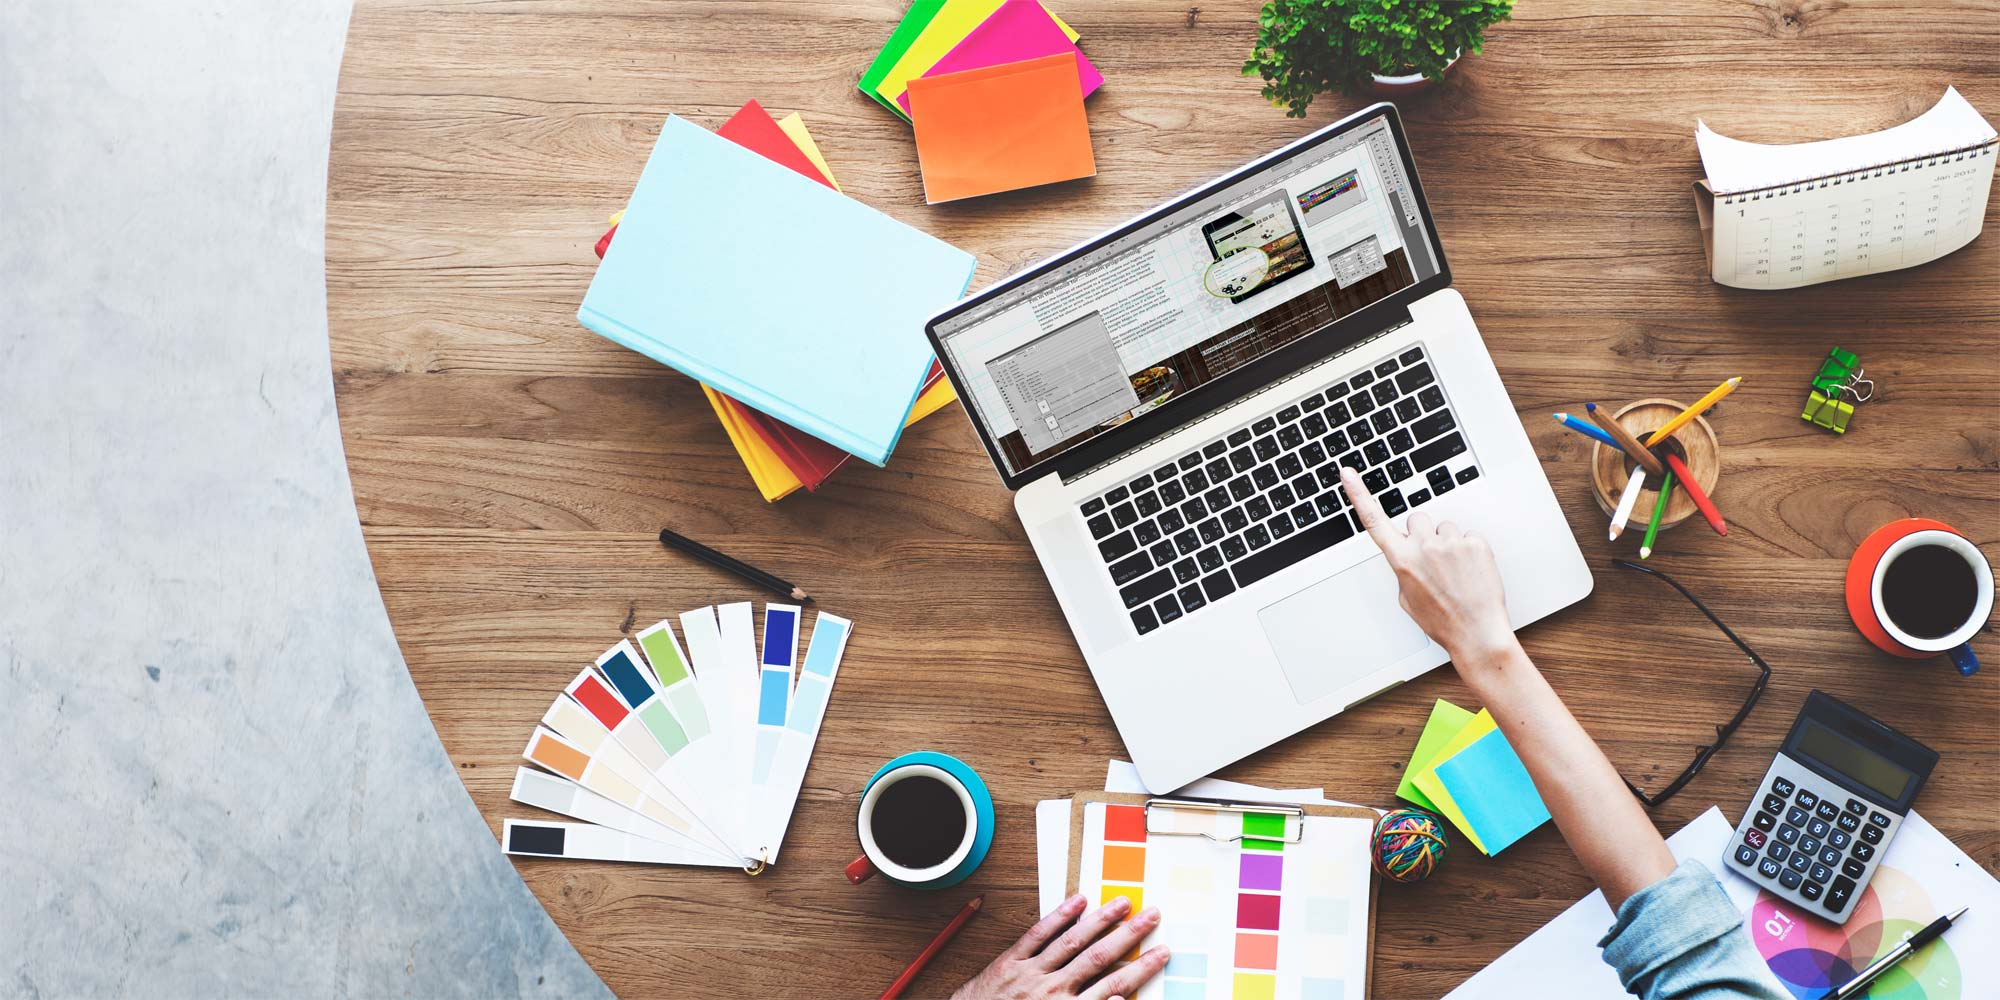 Give a New Dimension in Your Business With Web Designing Services